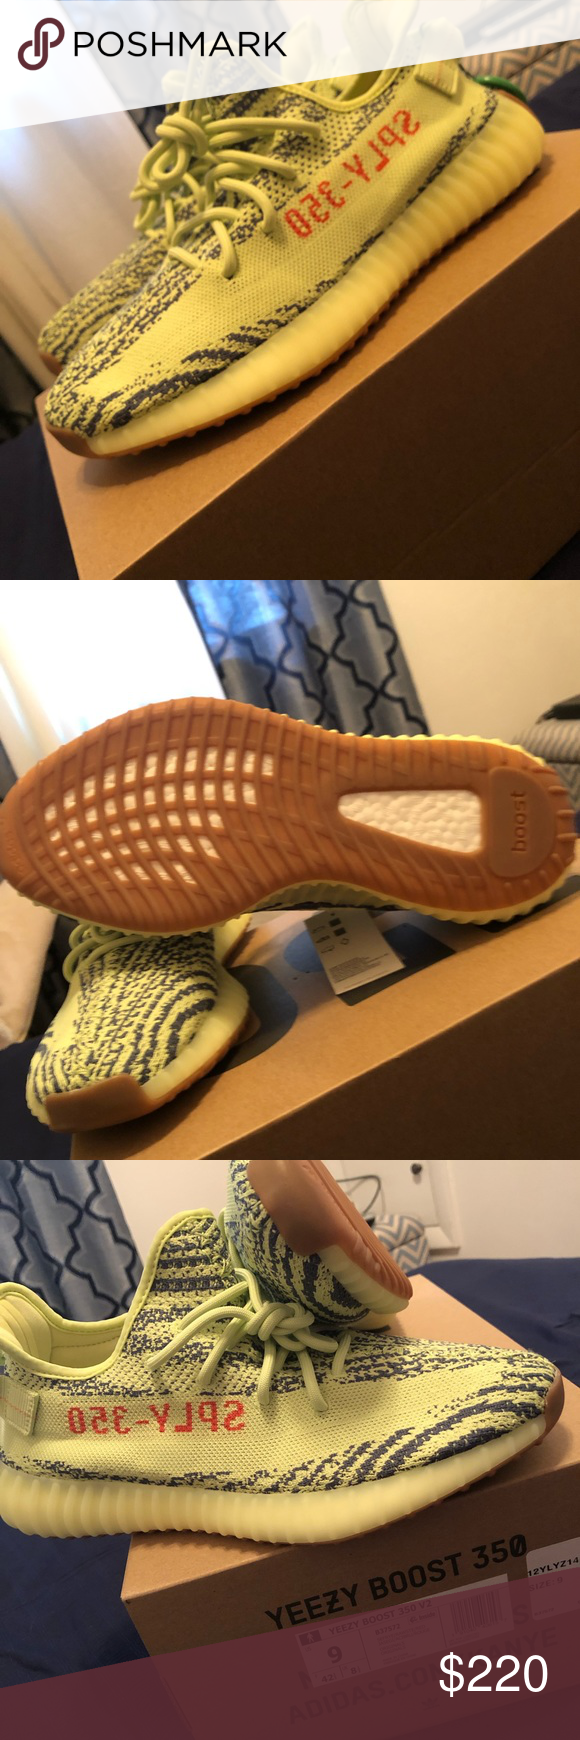 81aba230 Semi-Frozen Yellow Yeezy 350 Boost Never Worn Size 9 Authentic From StockX  Yeezy Shoes